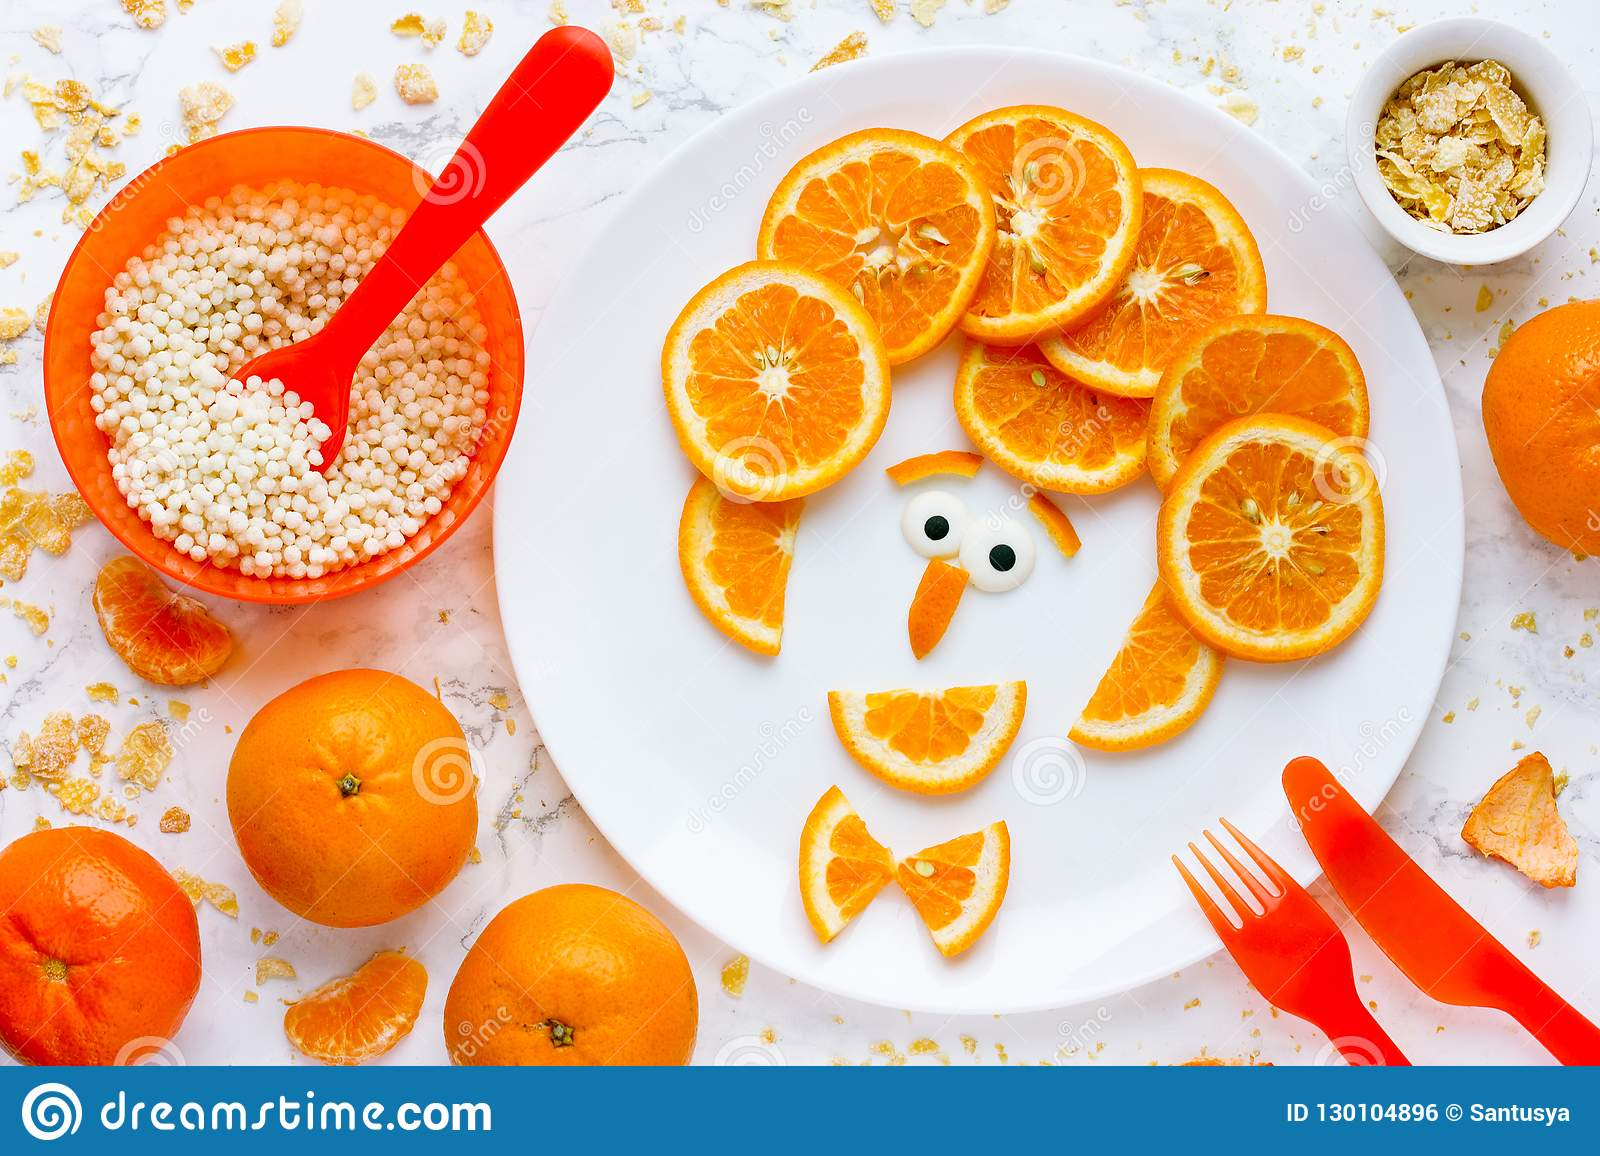 Funny Man Face Fruit Plate Creative Idea For Healthy Snack Or Dessert For Kids Stock Photo Image Of Fruit Cooking 130104896